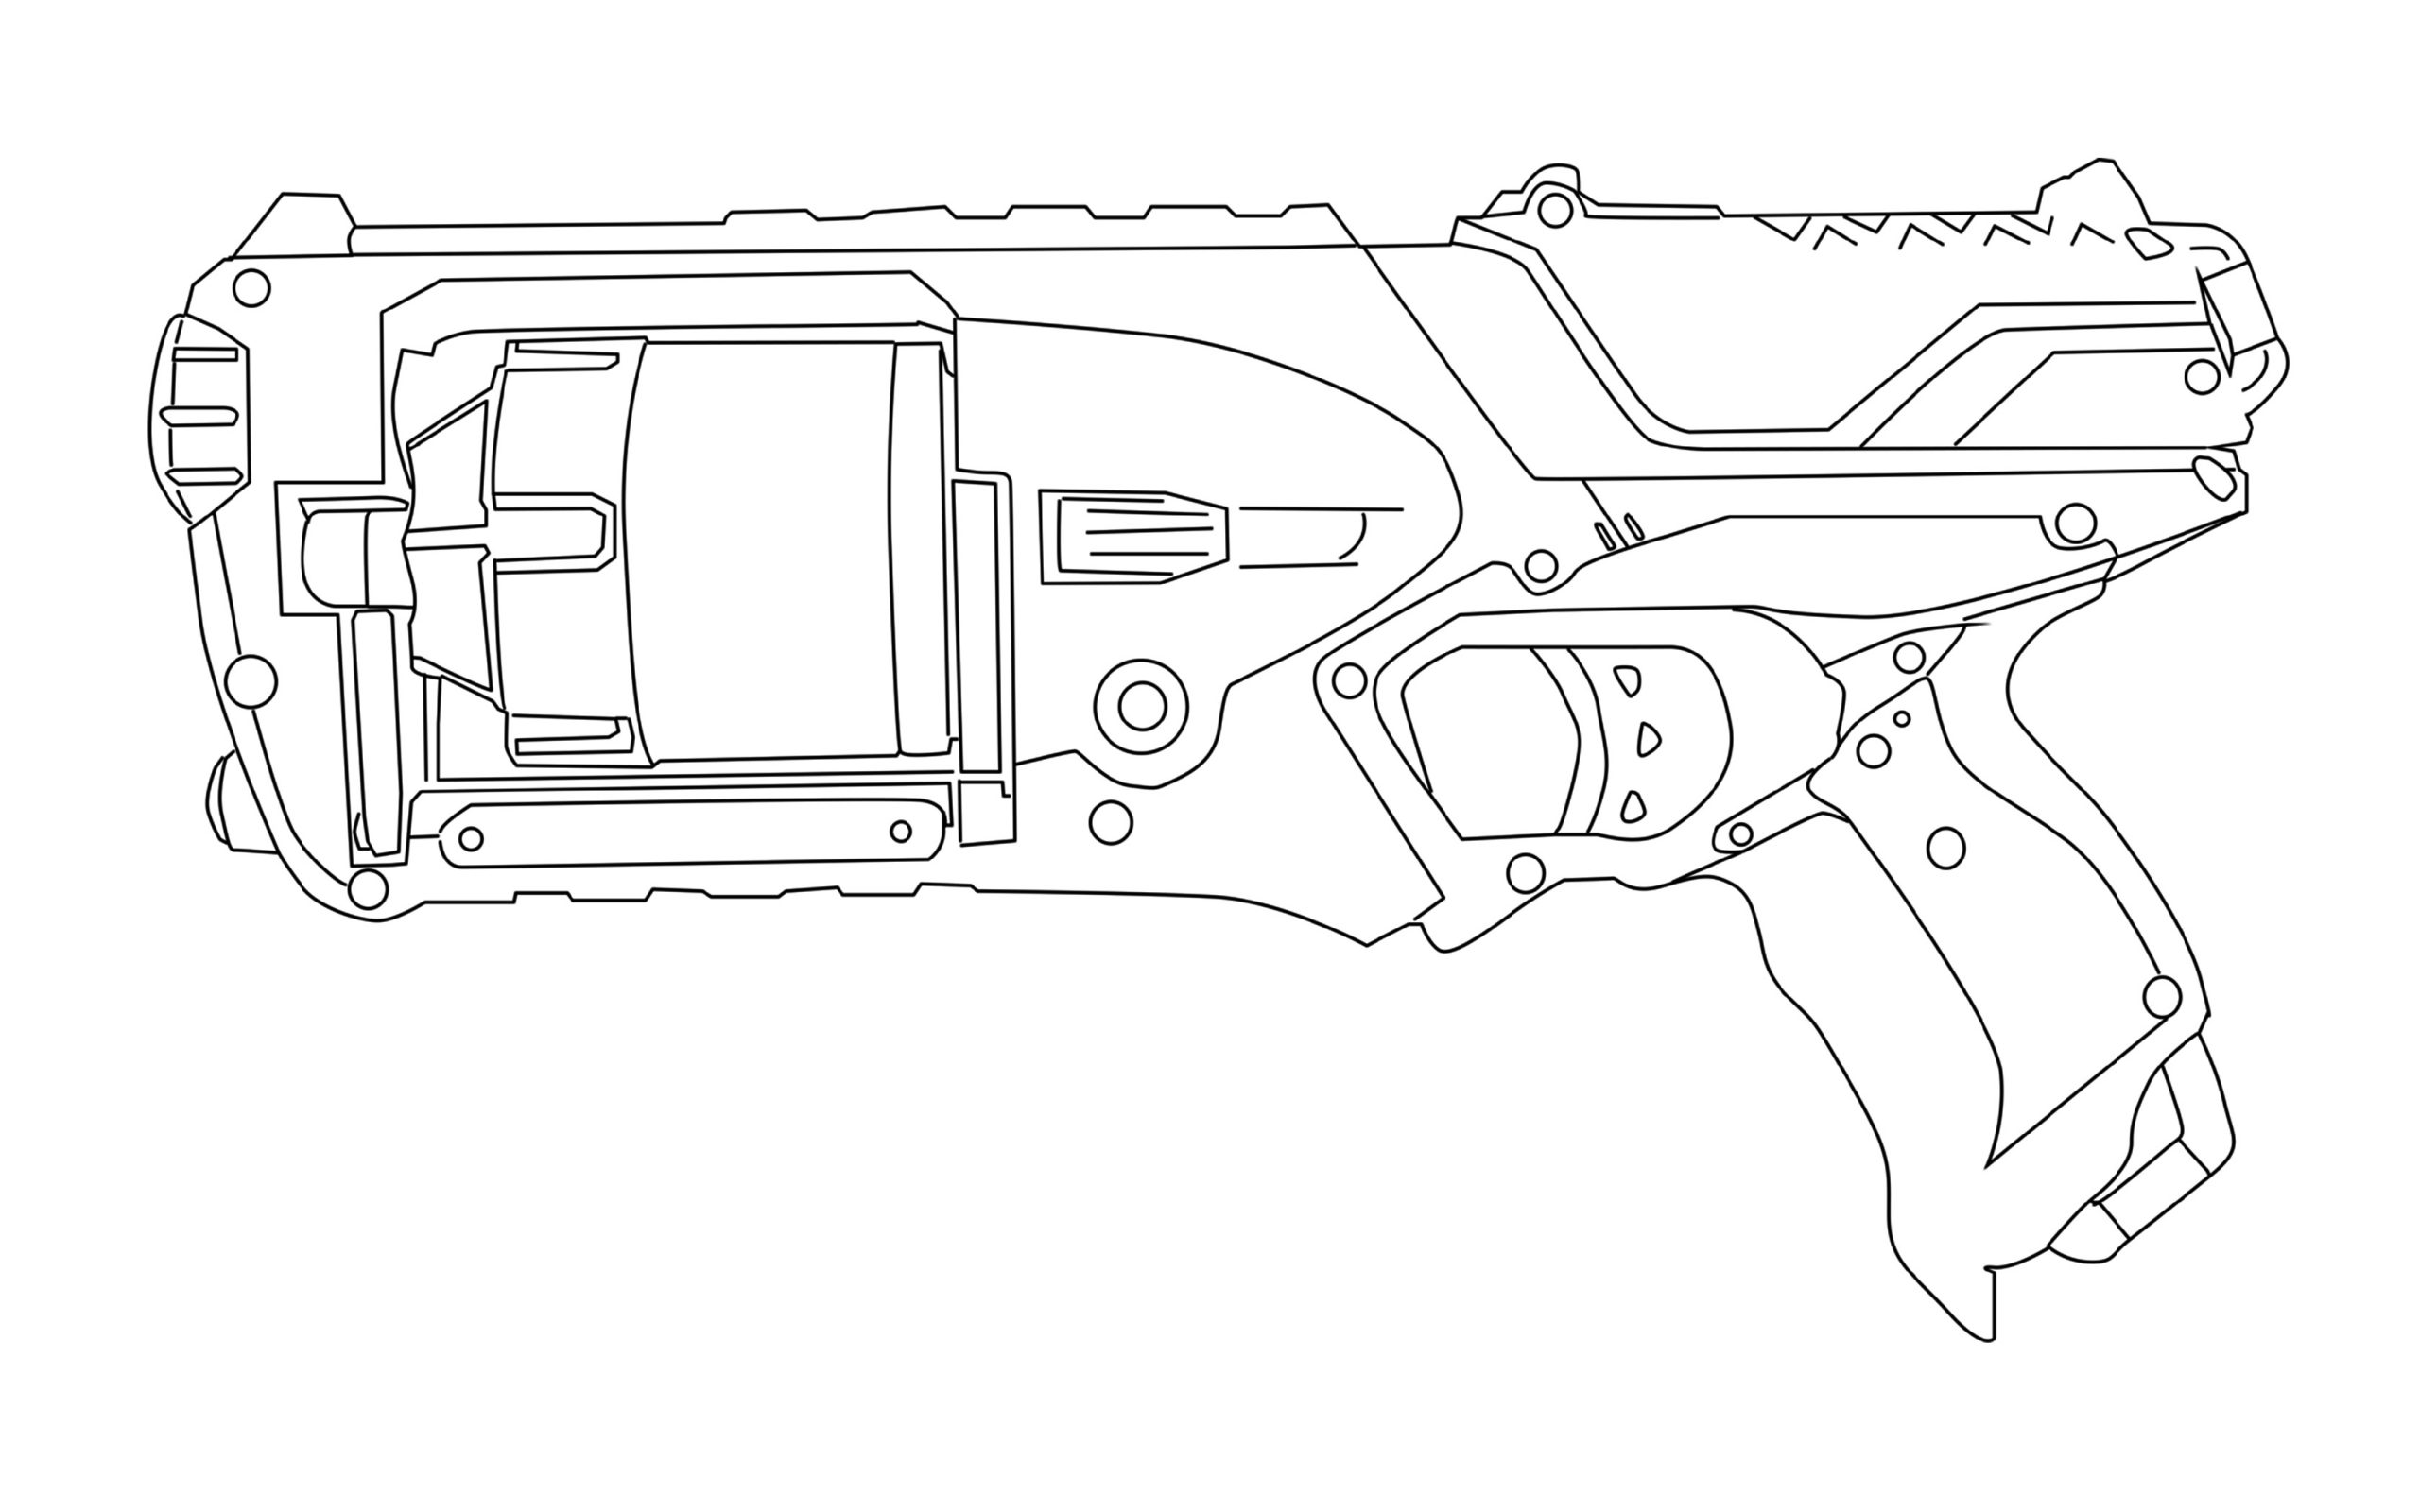 nerf gun coloring pages nerf gun coloring pages pages nerf coloring gun